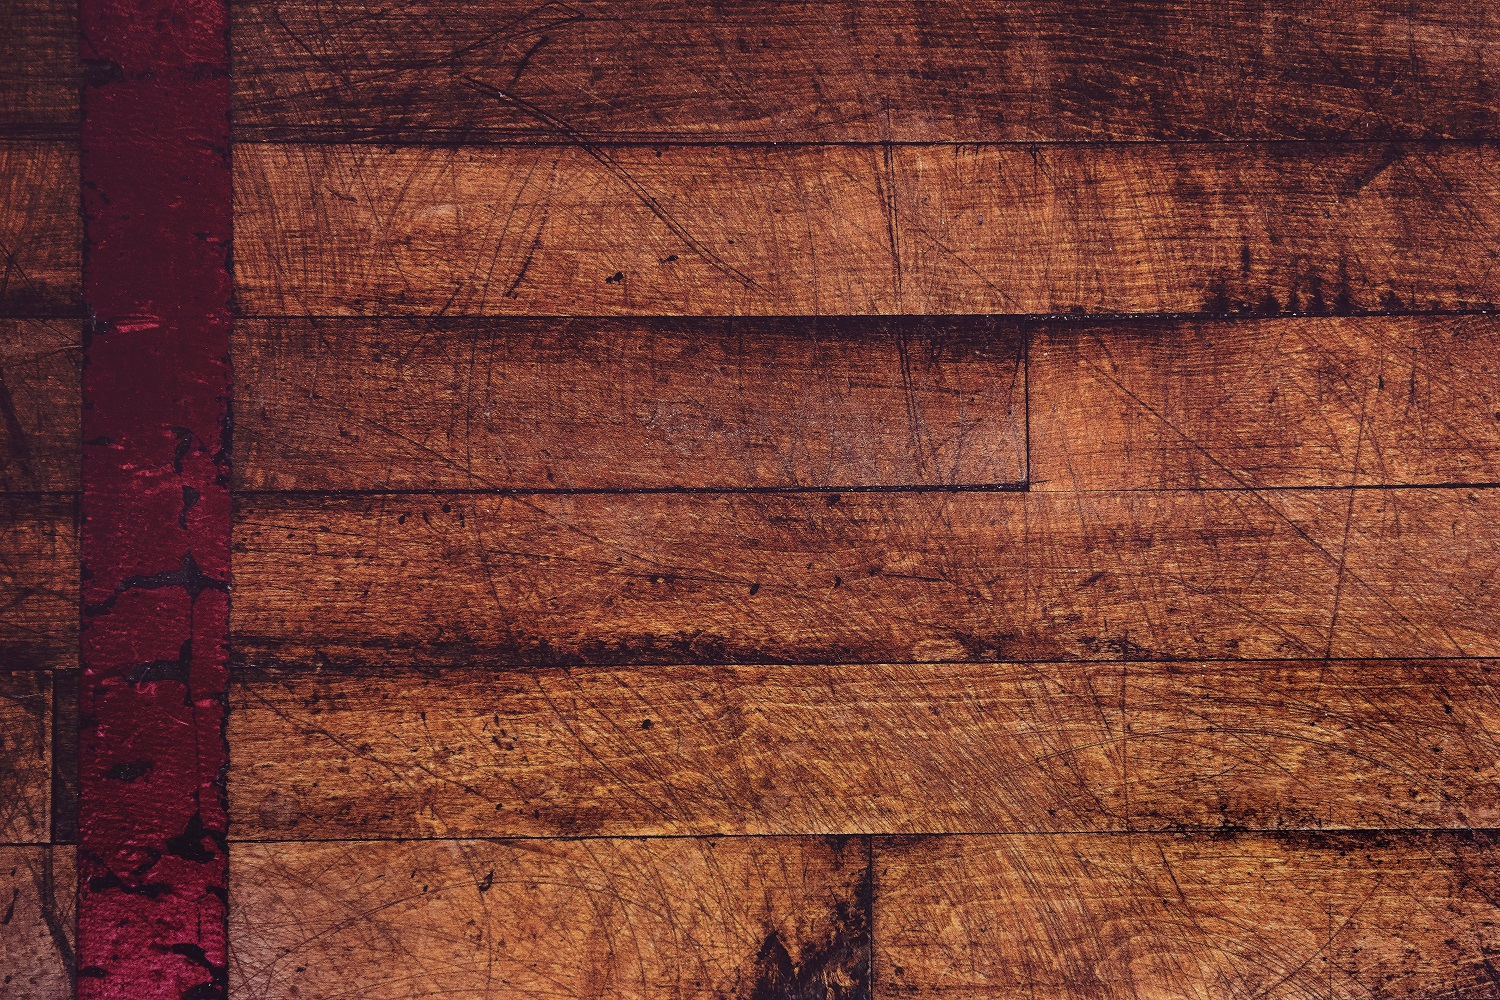 Scratches in wood